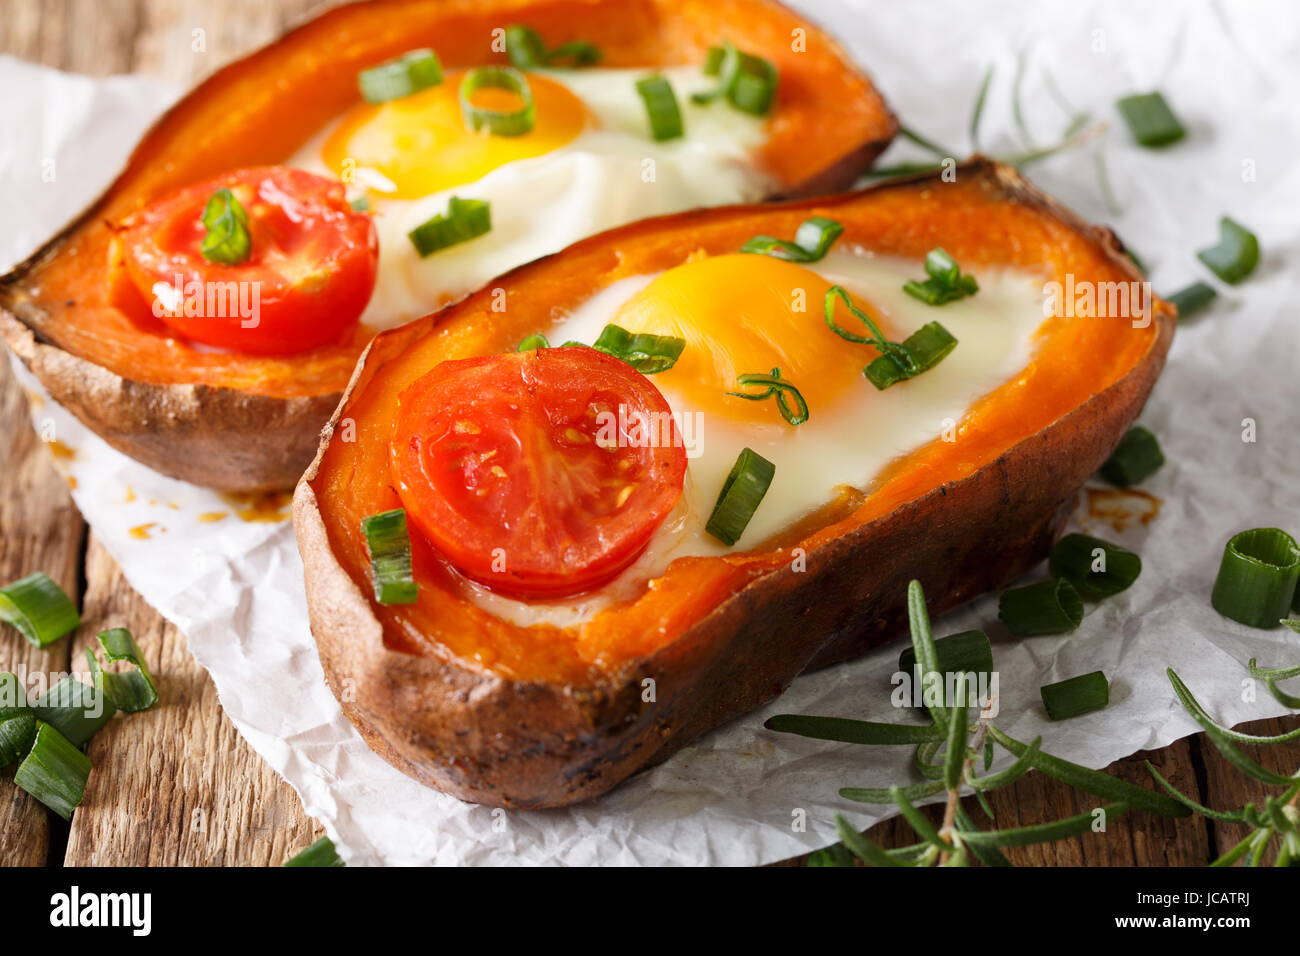 healthy baked sweet potato with fried egg and tomato close-up on the table. Horizontal - Stock Image